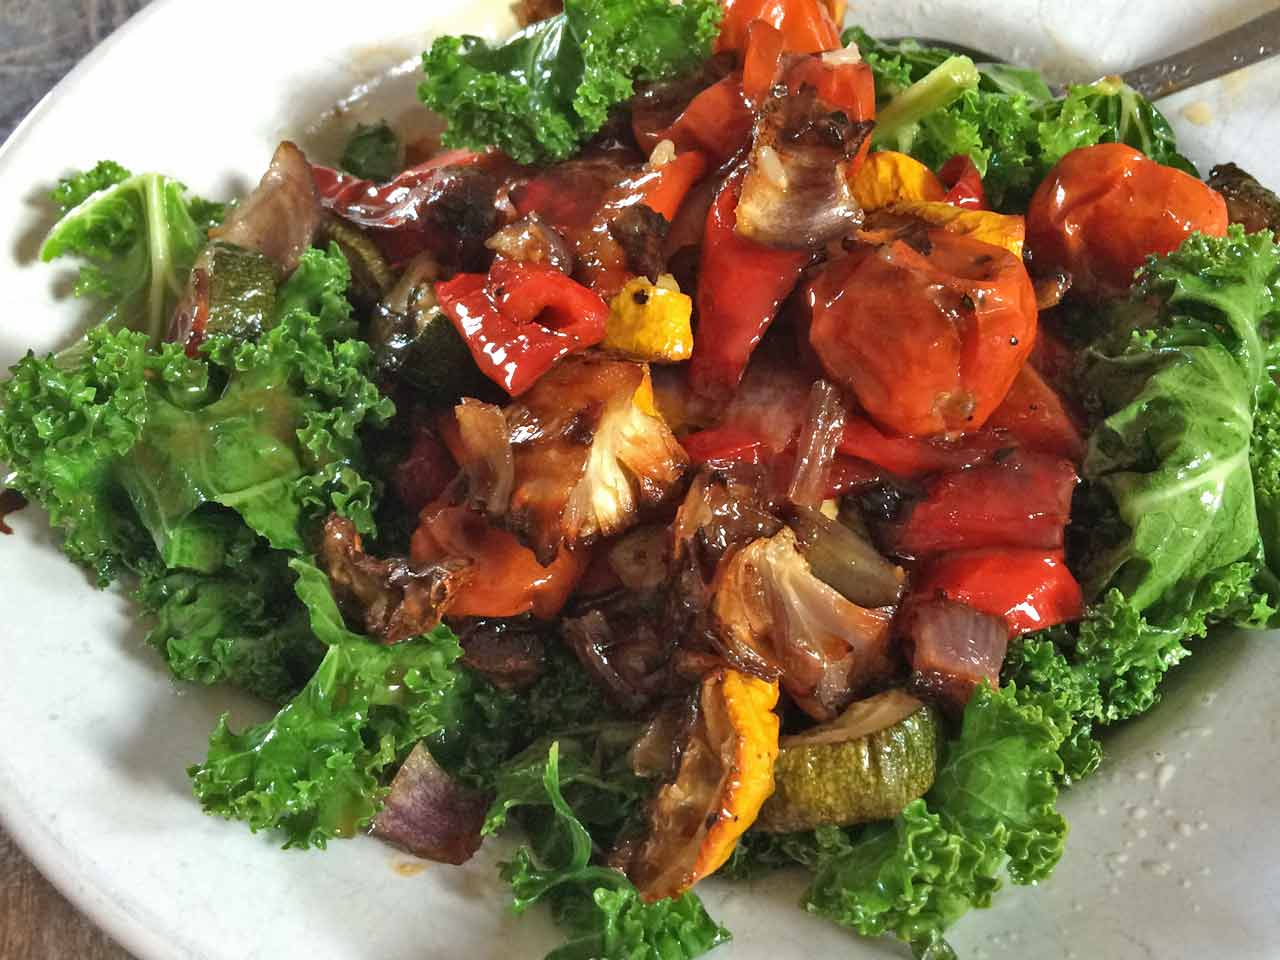 Stir fried kale with vegetables